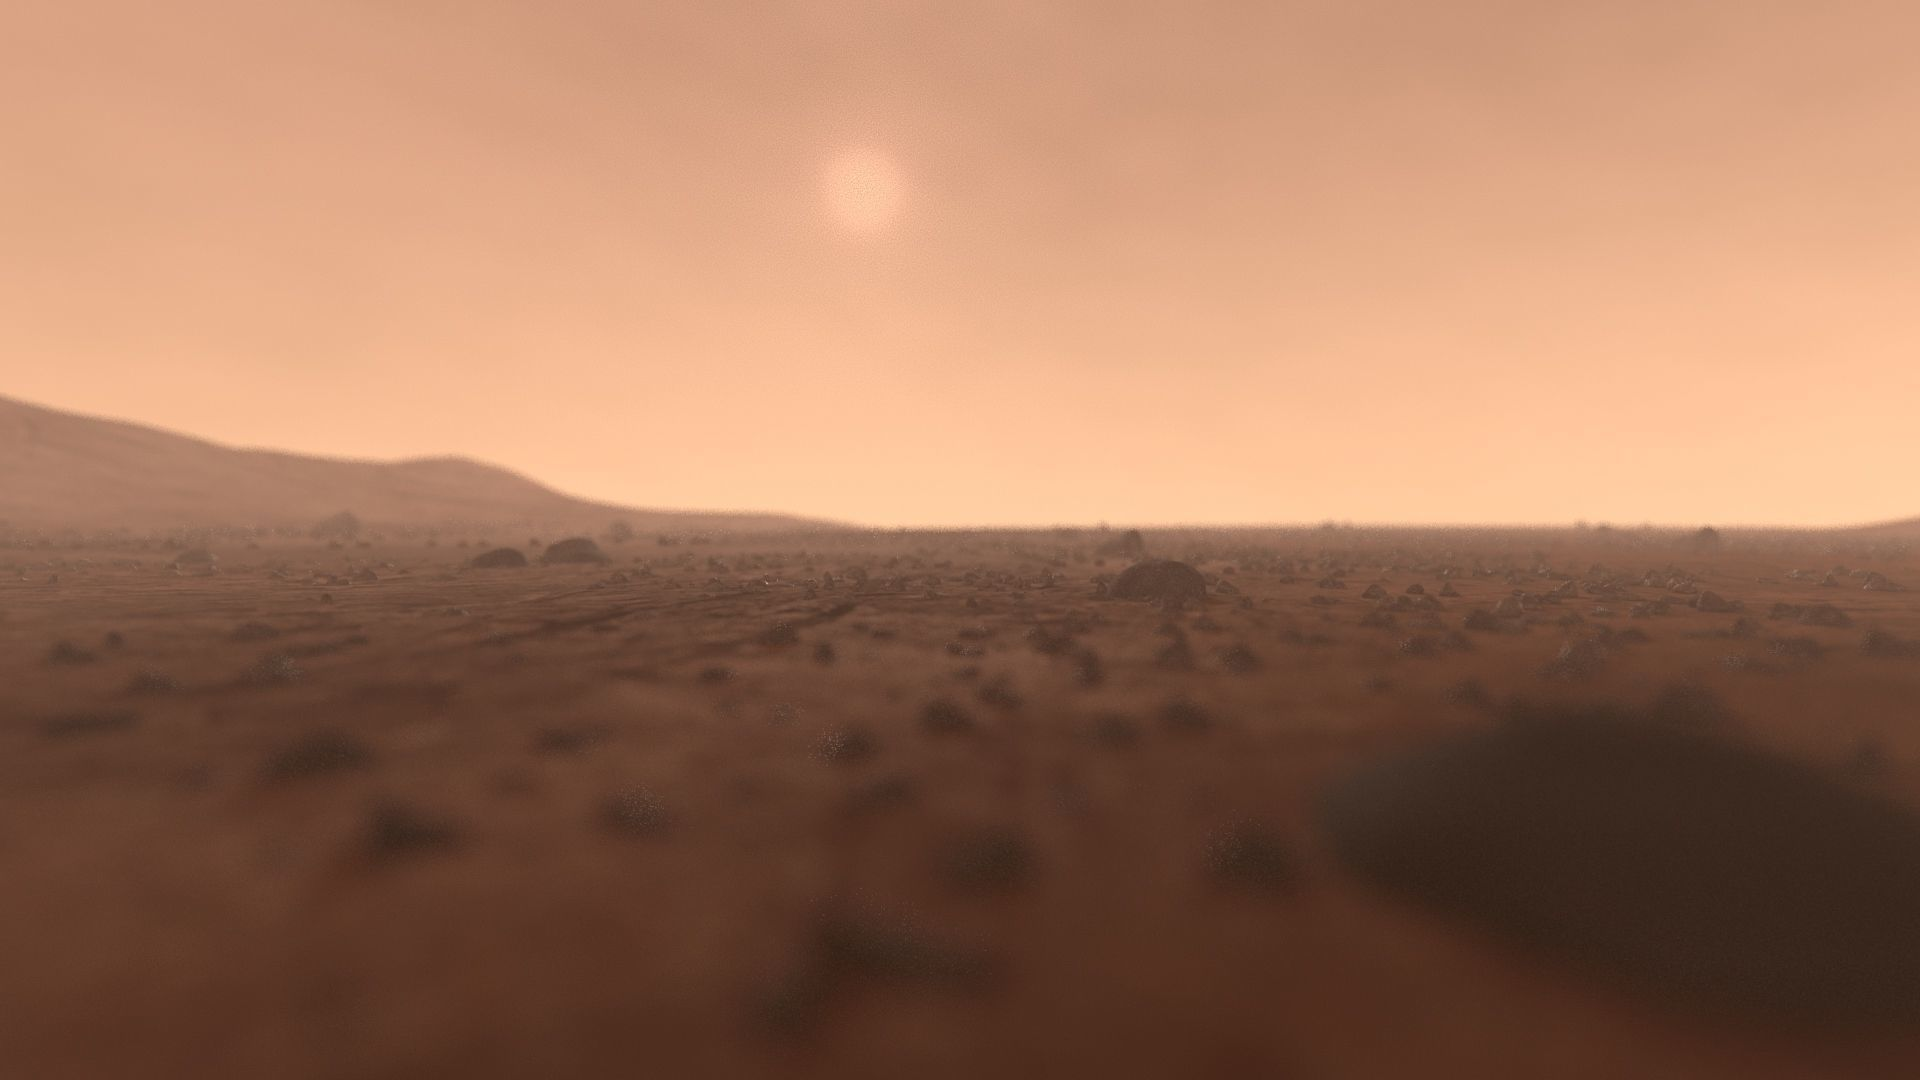 Mars surface - full scene